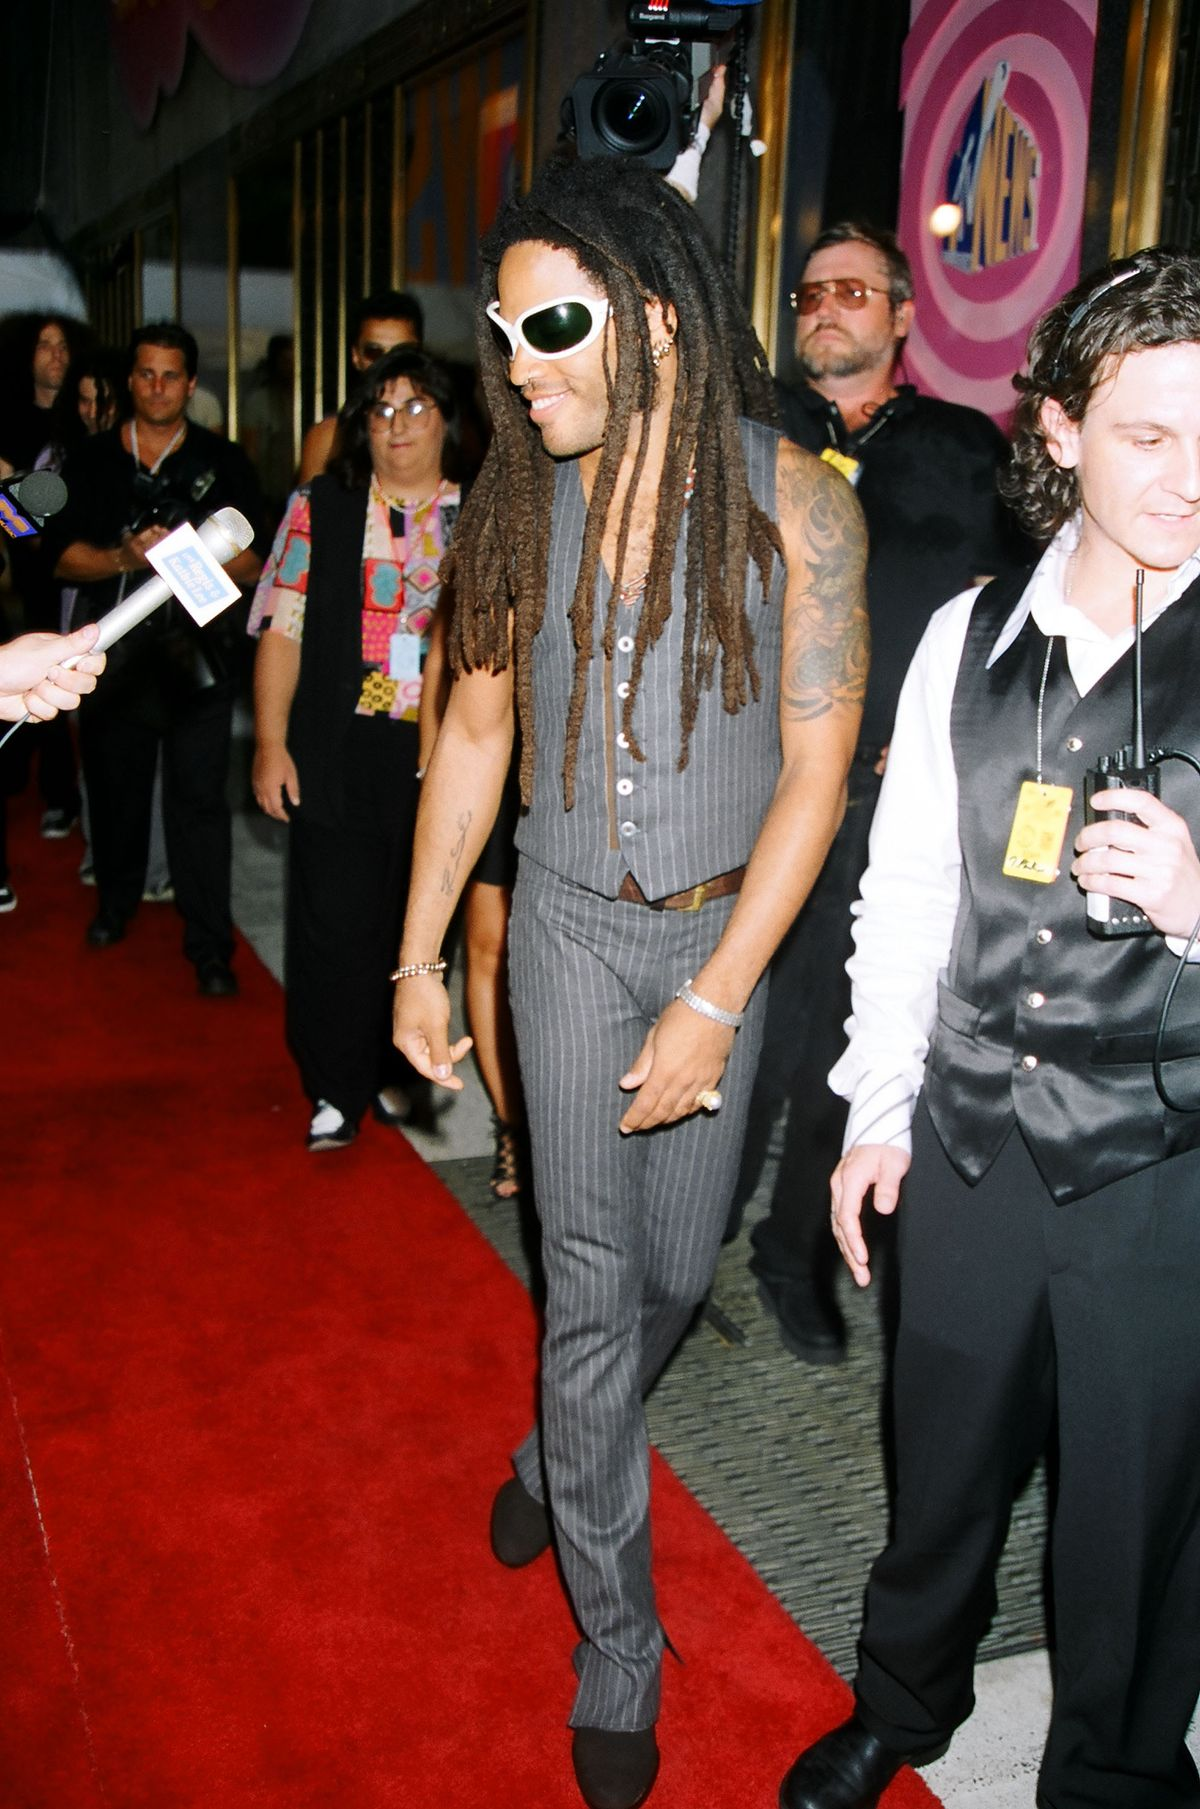 Lenny Kravitz during 1995 MTV Video Music Awards Show at Radio City Music Hall in New York City, New York, United States. (Photo by Jeff Kravitz/FilmMagic, Inc)